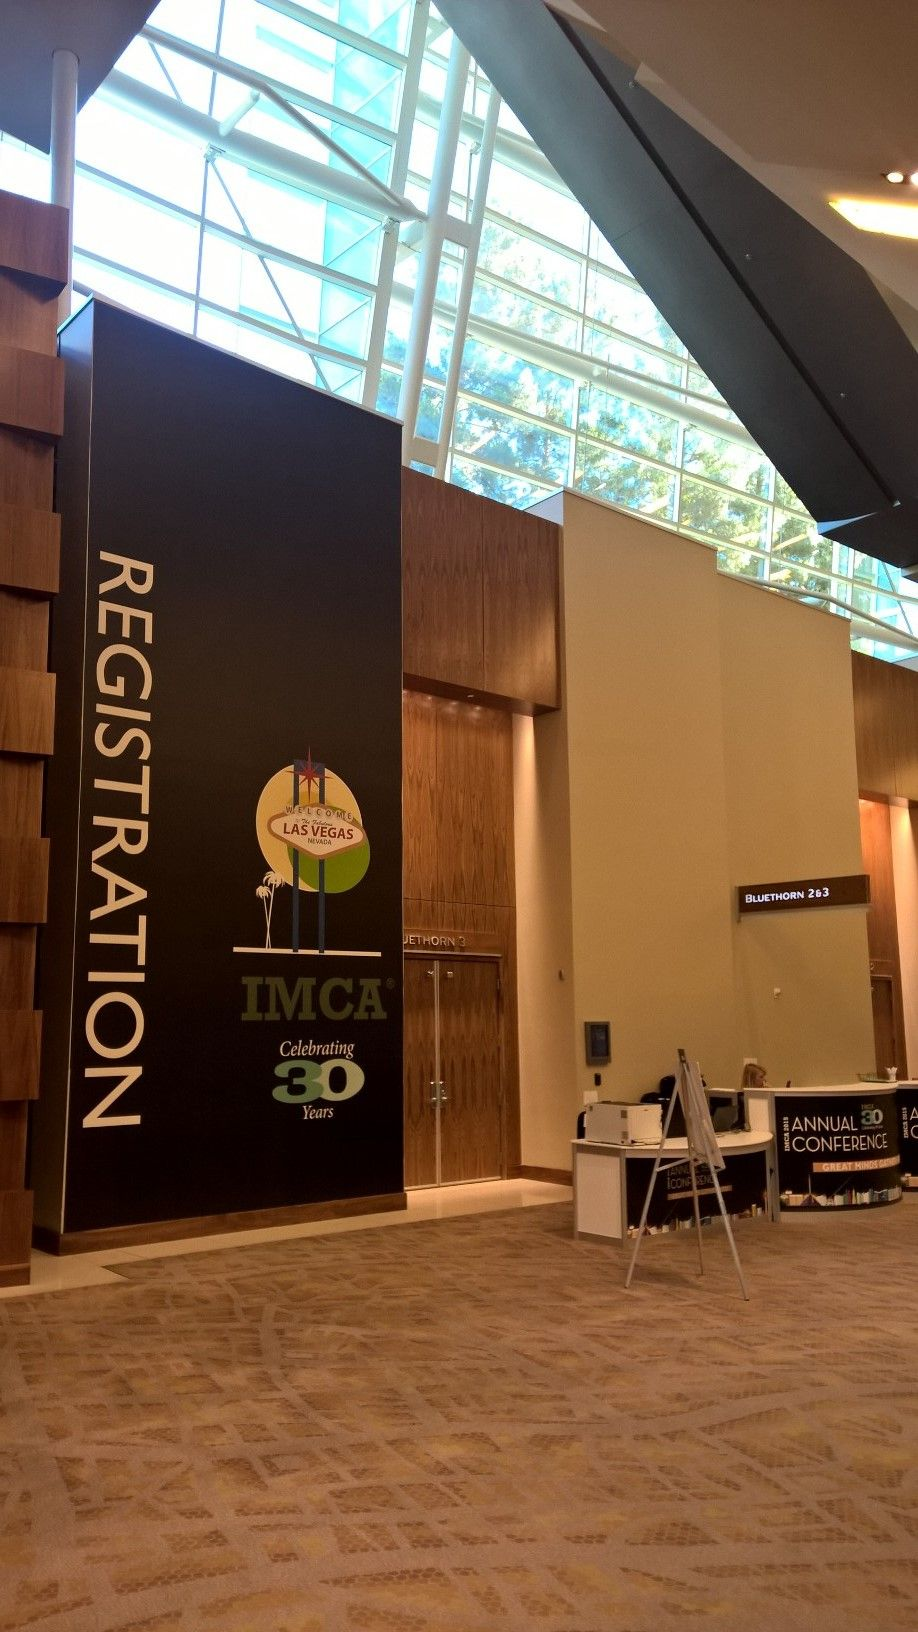 registration wall graphics for imca at aria las vegas. #graphics